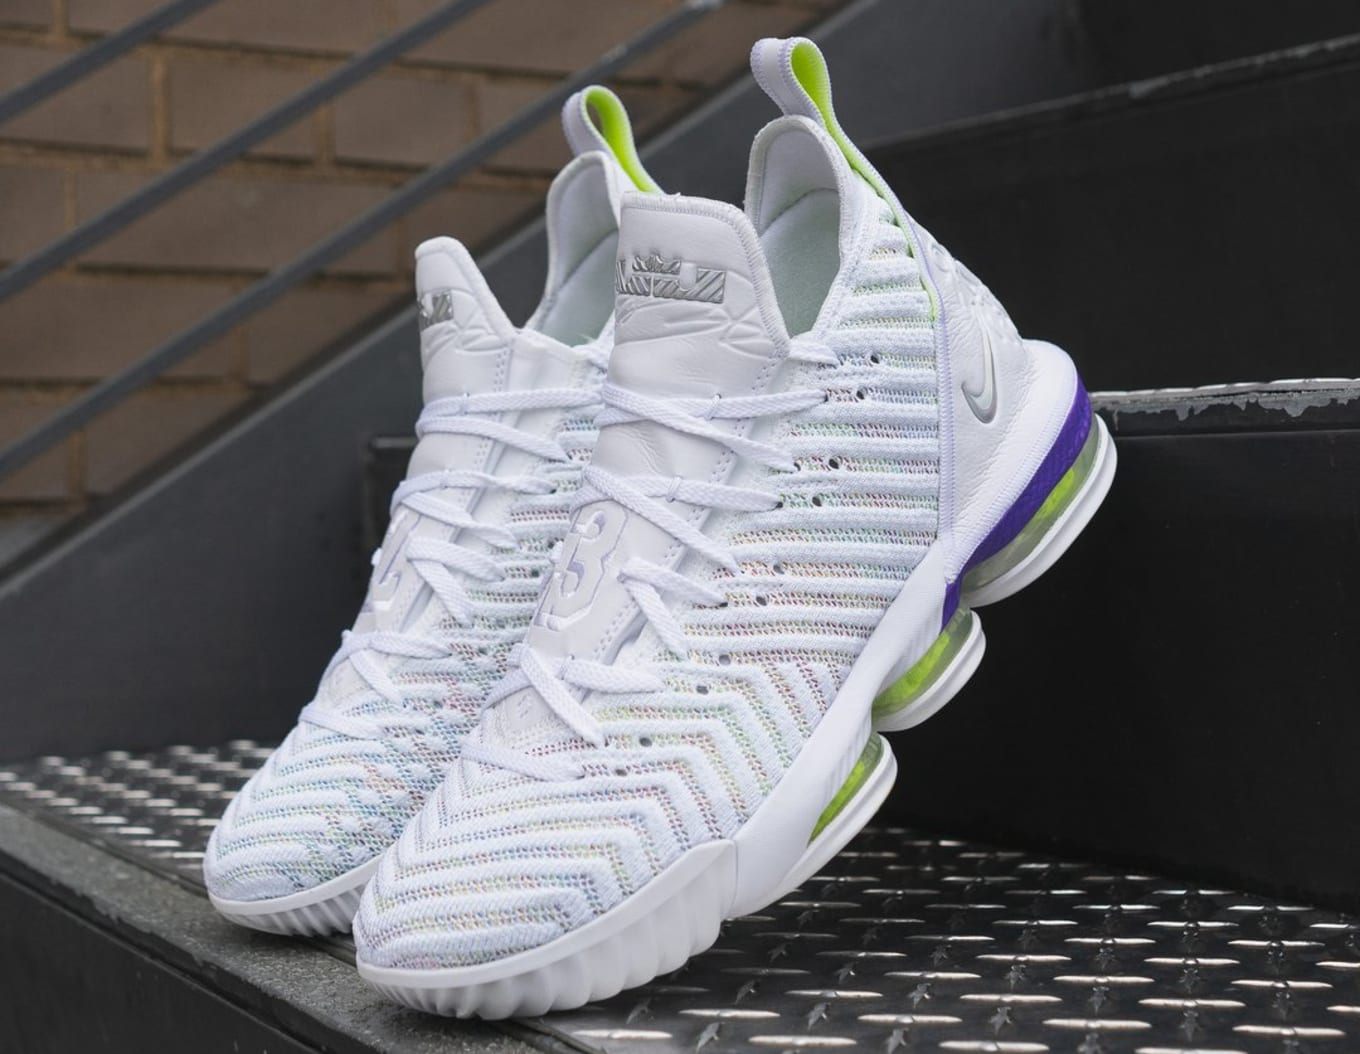 brand new 83404 a1888 This Nike LeBron 16 Remind Sneakerheads of Buzz Lightyear. The newest  colorway drops on Feb. 28.